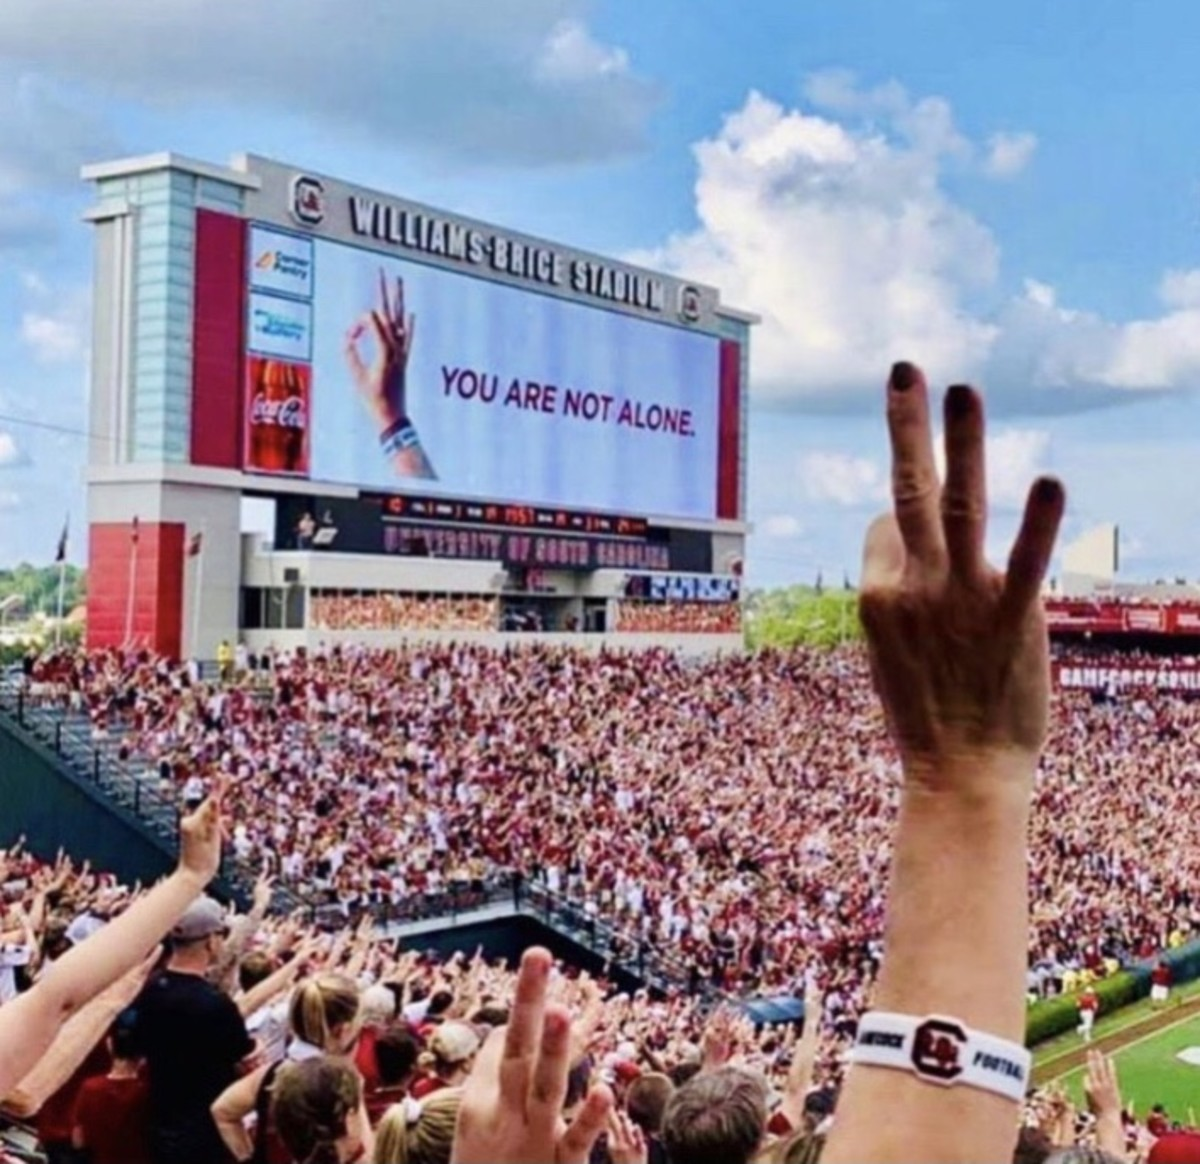 Fans at Williams-Brice Stadium hold up No. 3 in honor of Tyler Hilinski